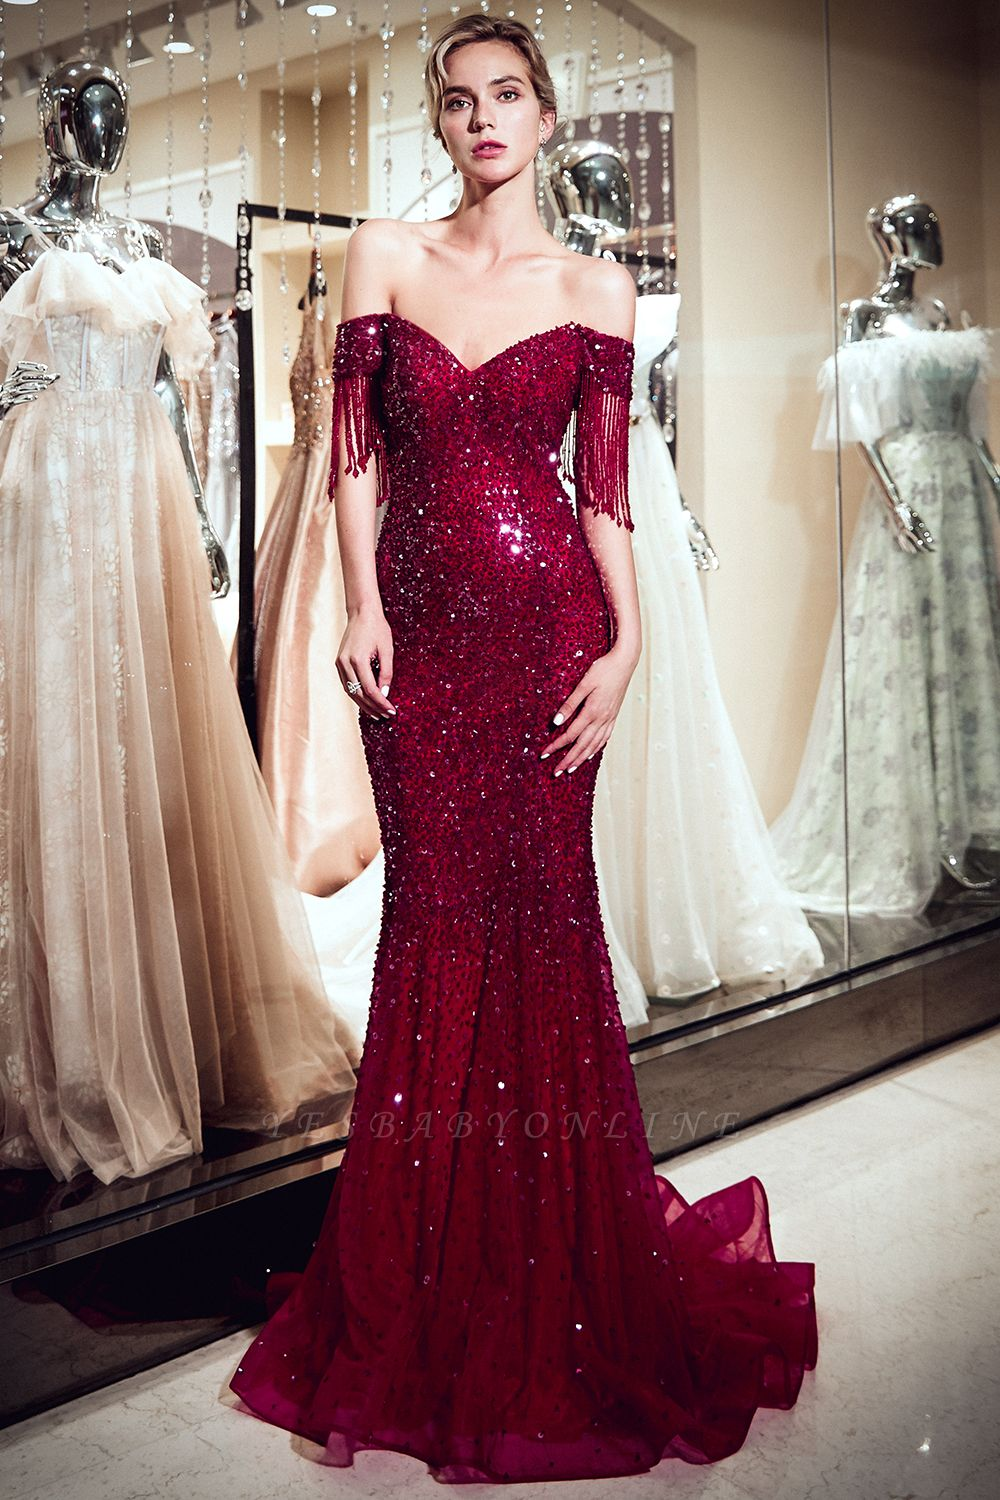 Sparkly Burgundy Crystal Off-the-Shoulder Prom Dress | 2019 Mermaid Evening Dress with Tassels